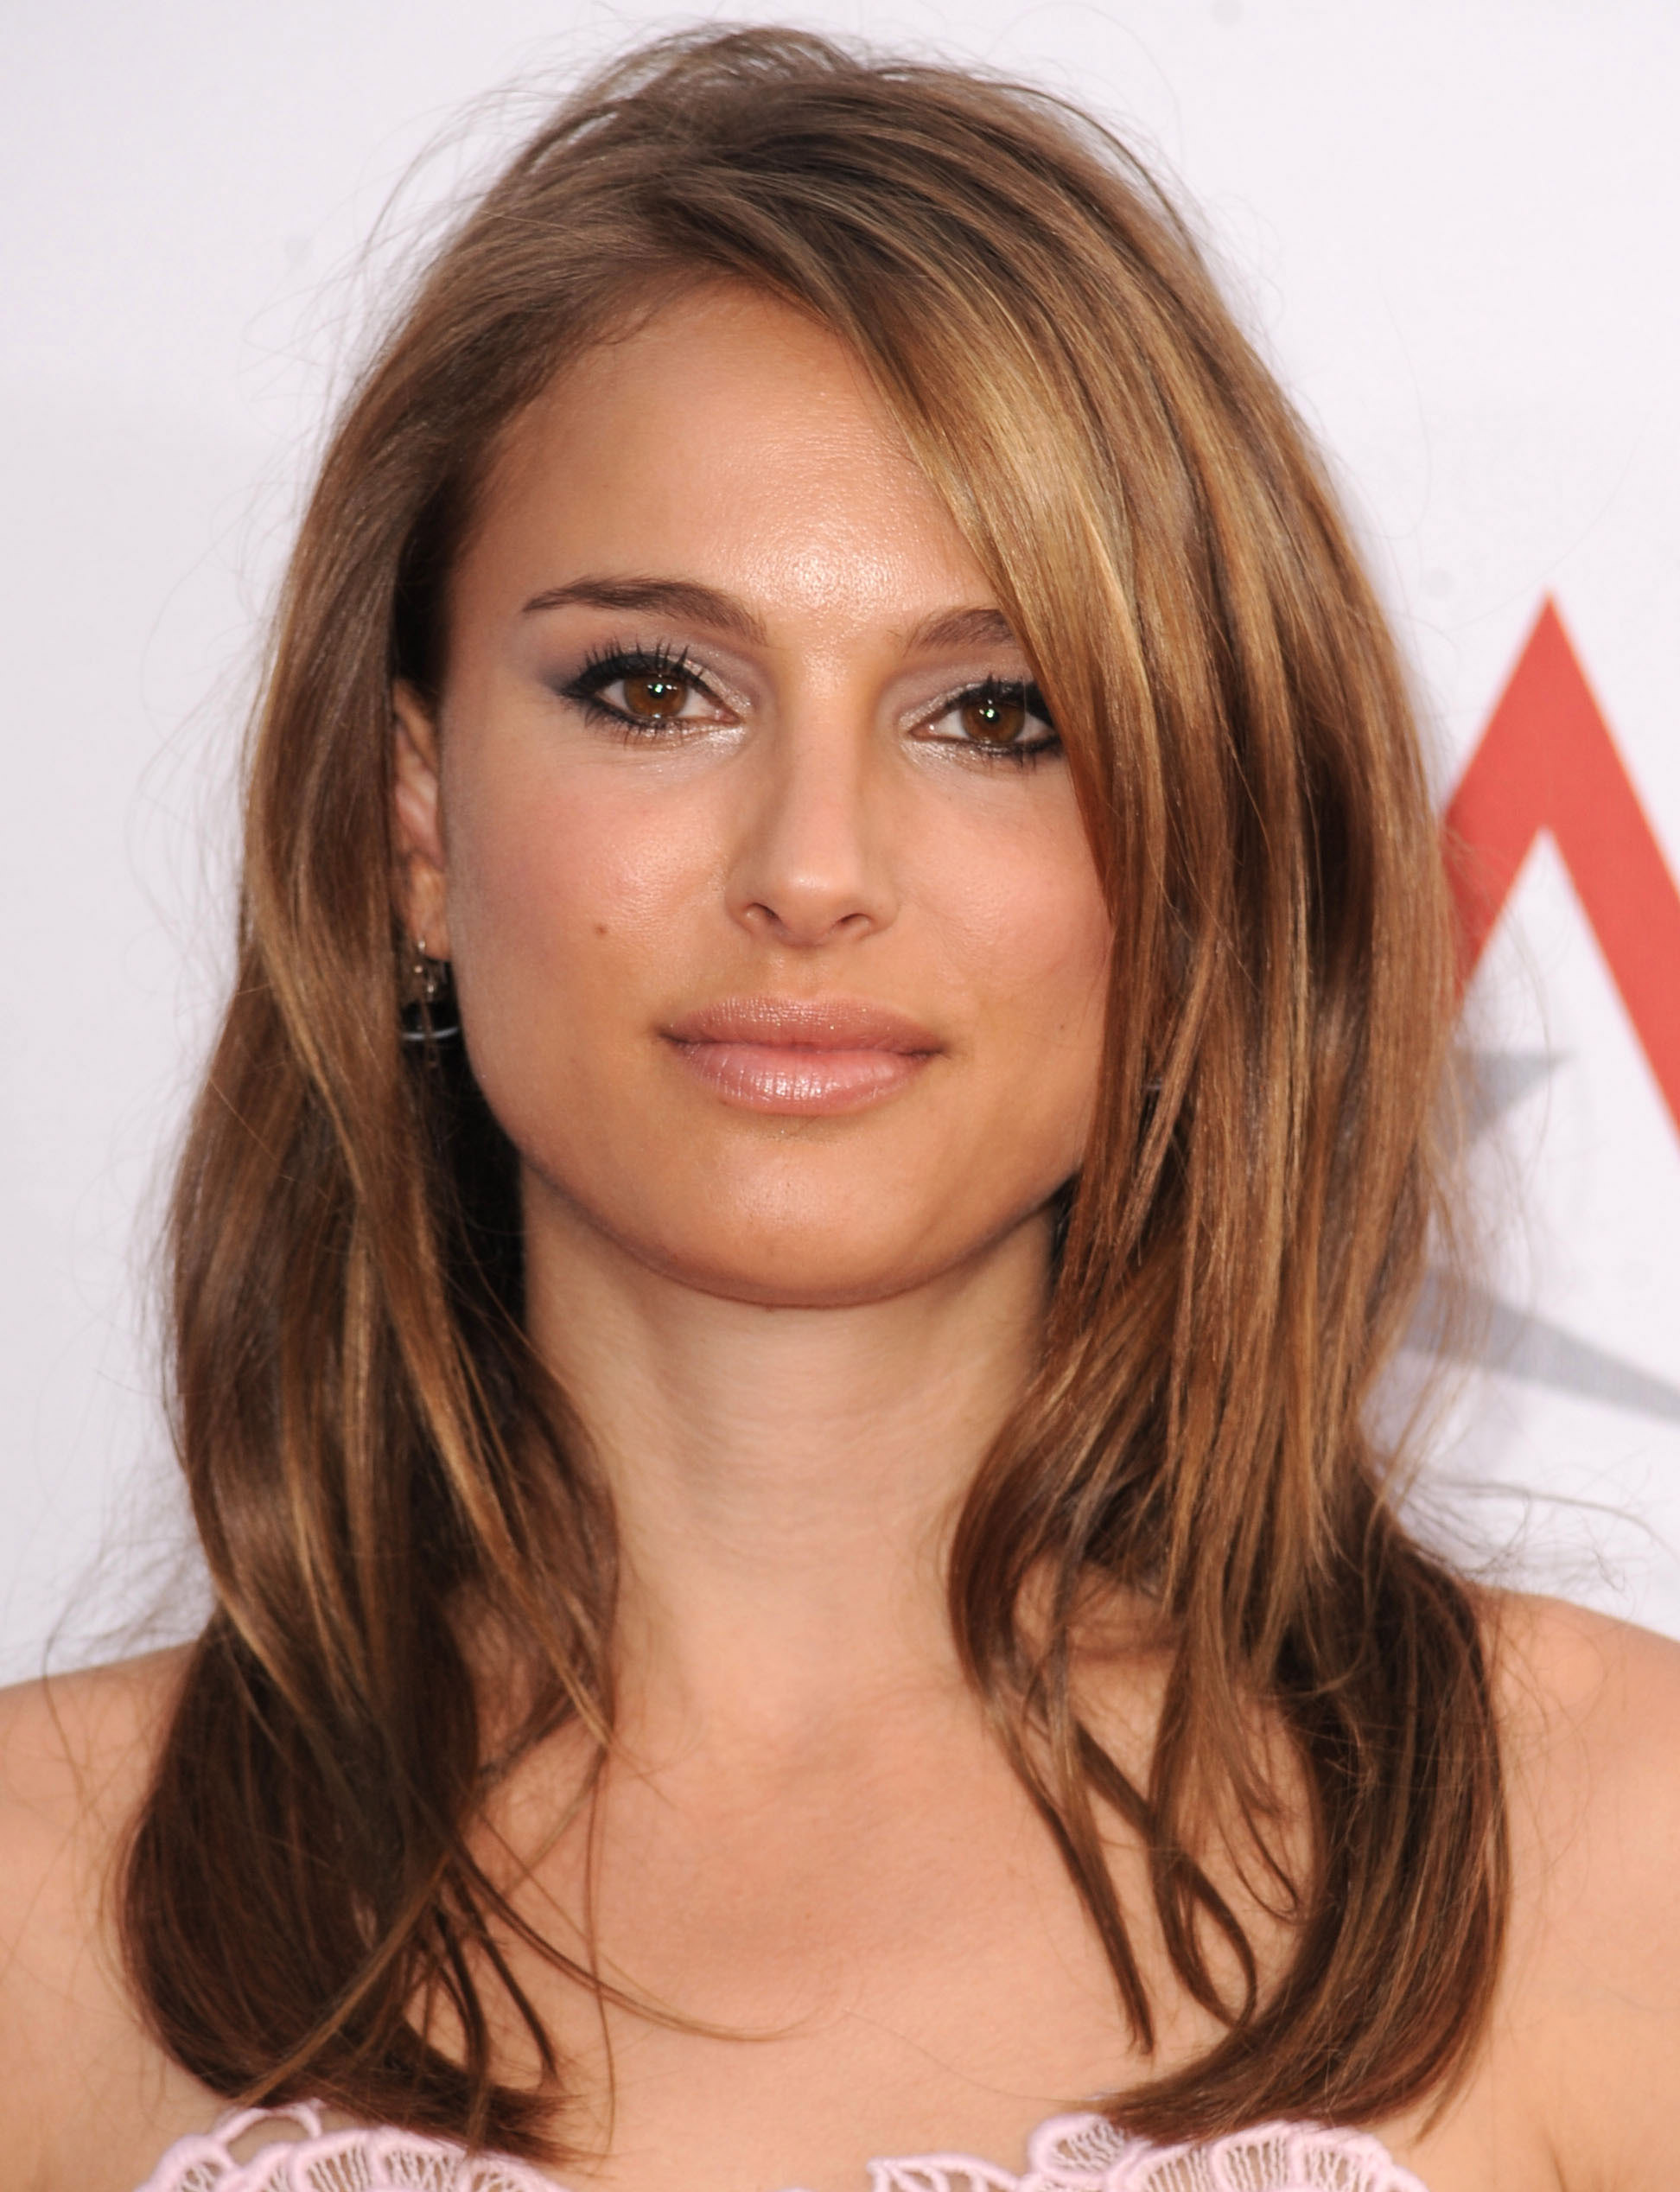 natalie portman - photo #10